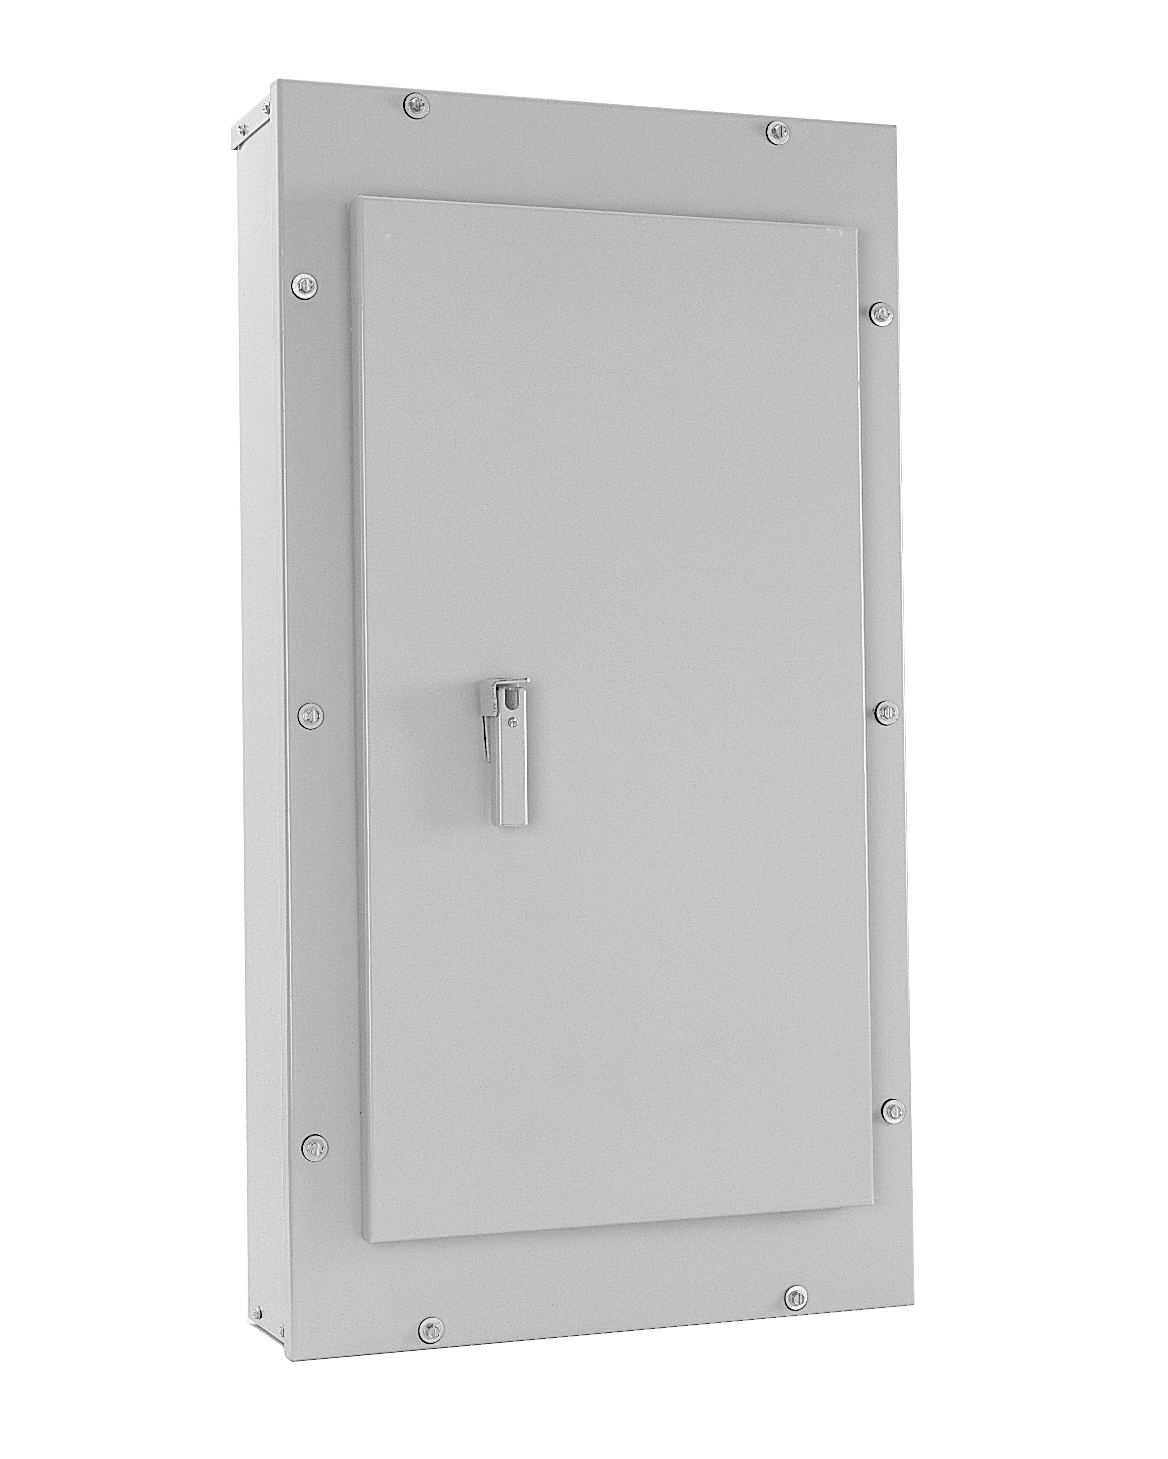 GE,AB493,General Electric AB493 Panel Board Box, 225/400/600/800 AMP, Enclosure: NEMA 1, Size: 49.500 IN Height X 20.000 IN Width X 5.810 IN Depth, Consist of: Blank Endwall